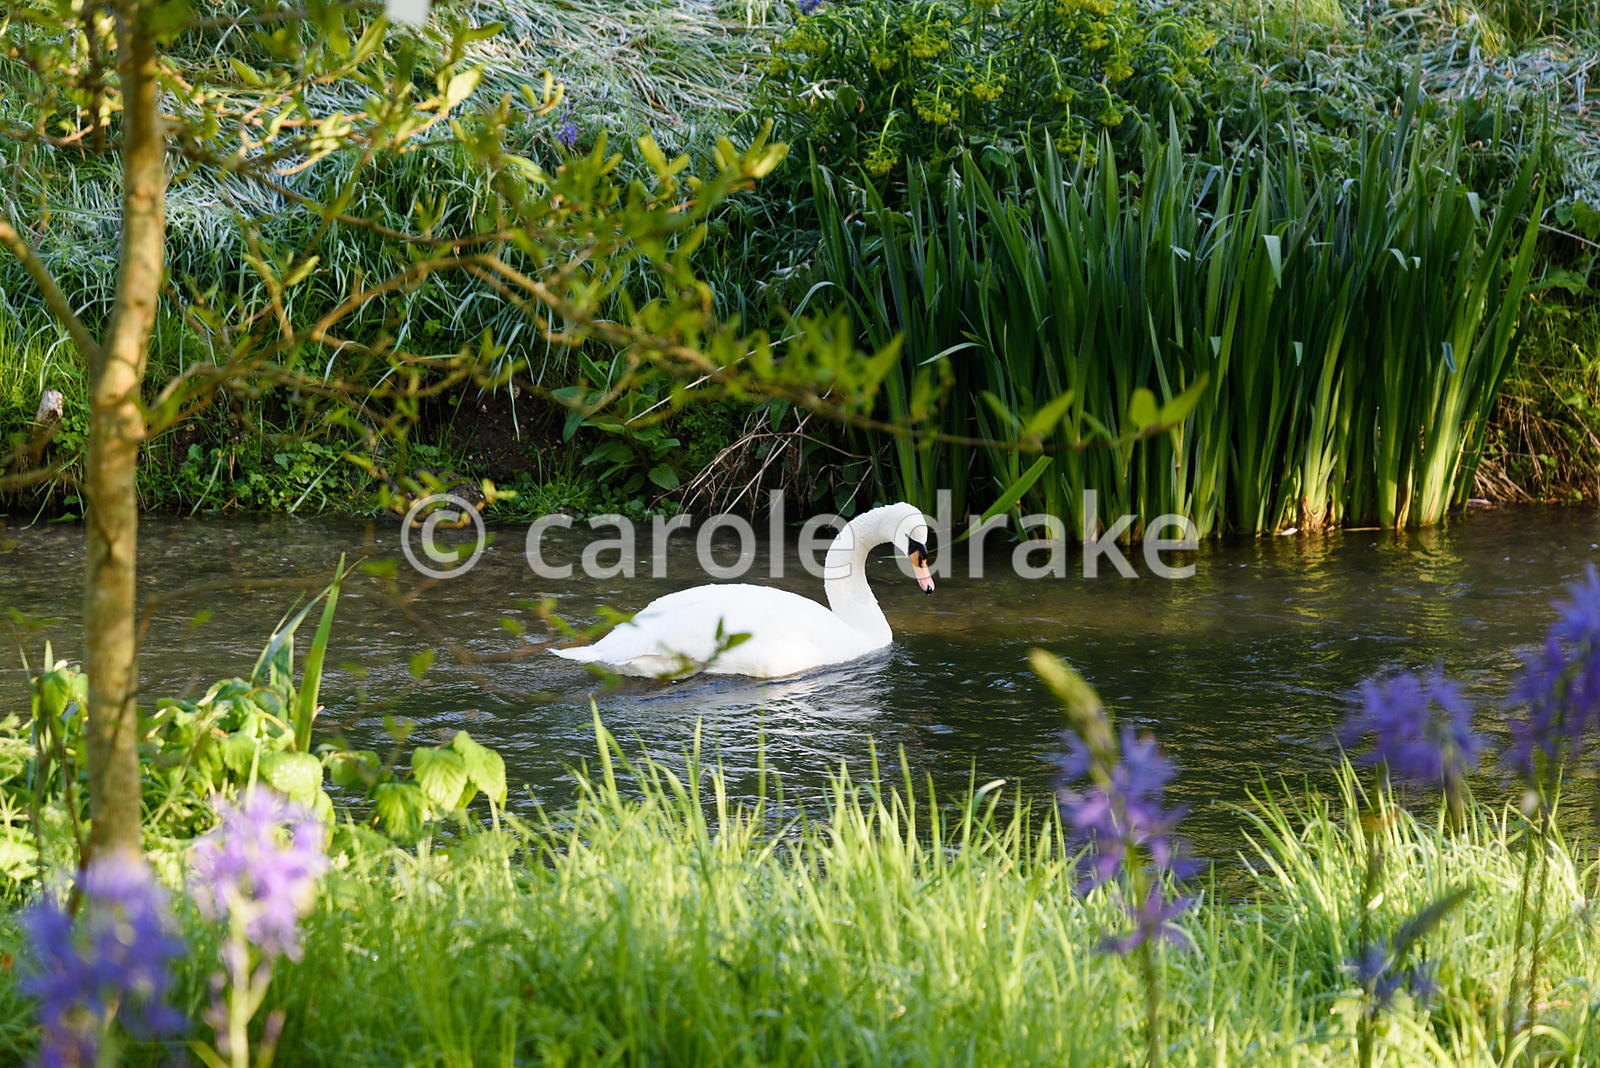 A swan on a tributary of the River Avon in the Japanese garden at Heale House, Middle Woodford, Wiltshire